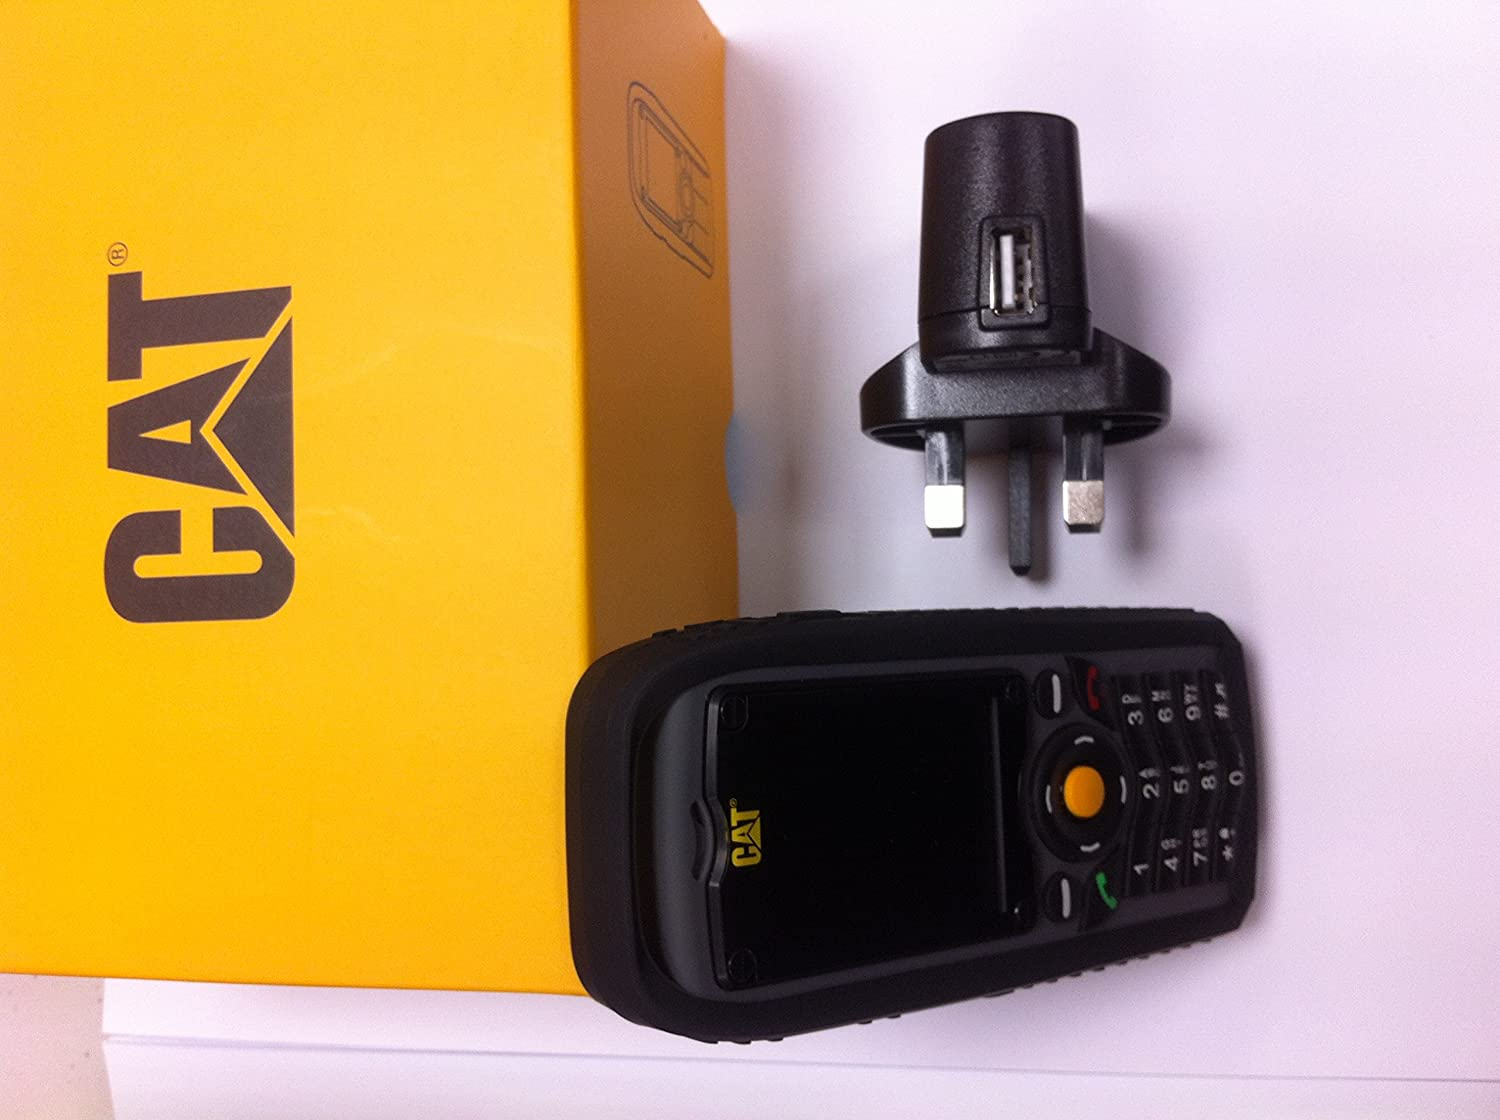 Jcb tradesman 2 tough mobile phone onedirect co uk -  Rugged Tough Mobile Phone Dust Proof Shockproof Waterproof Ip67 Durable Builders Phone Outdoor Cellphone Unlocked Sim Free Amazon Co Uk Electronics